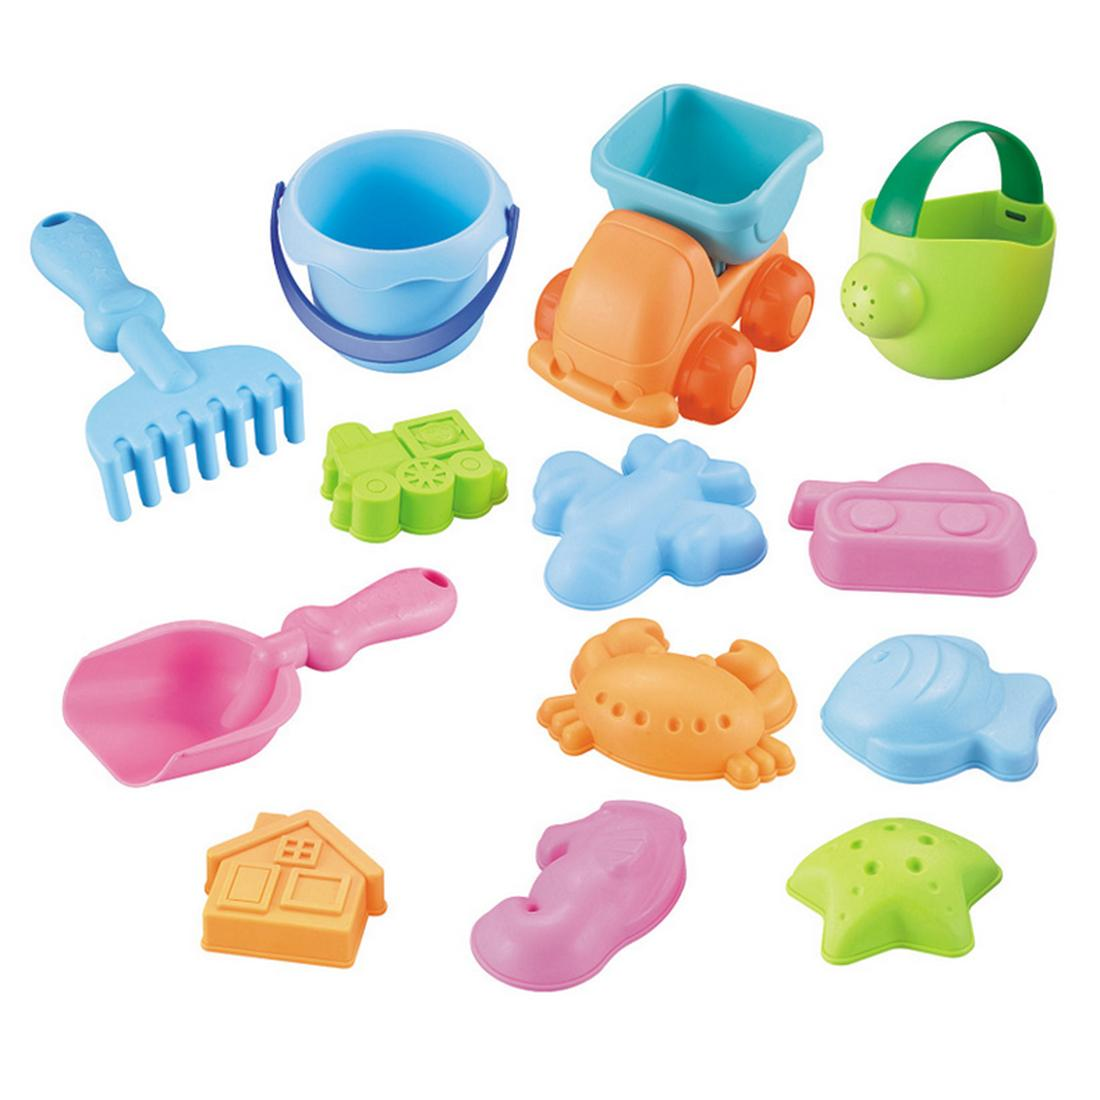 11-in-1 Beach Sand Toy Set Bucket Shovels Watering Can Children Safety Soft Plastic Toys Toys & Hobbies Color Random